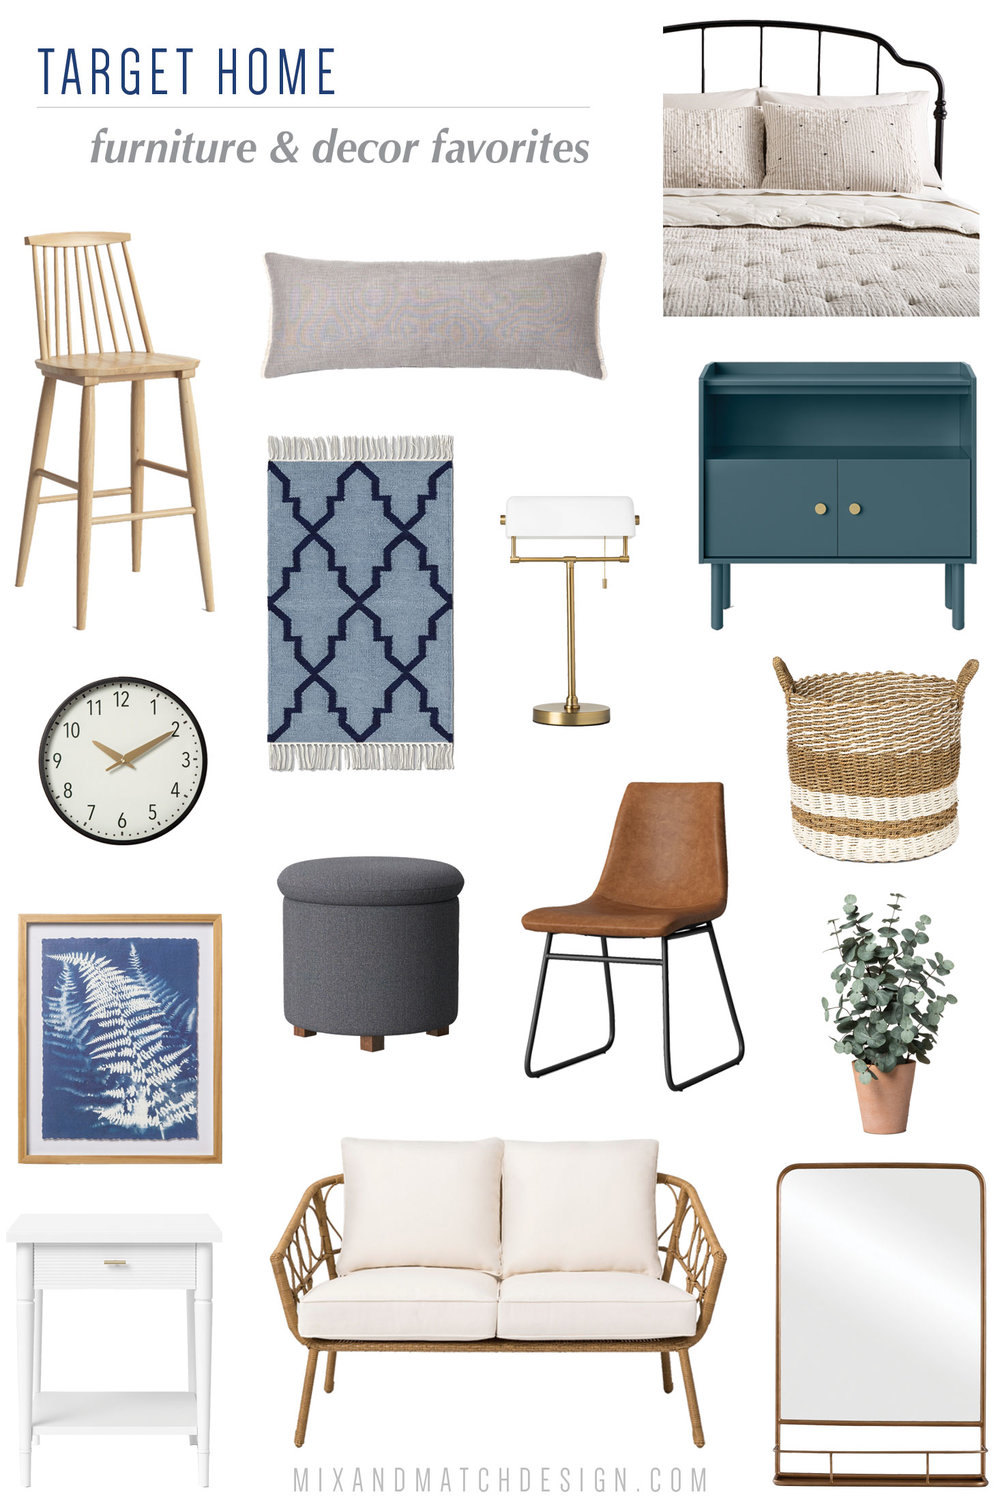 Target does it again! They have so many amazing new pieces of furniture and decor in their in-house brands including Project 62, Threshold, Hearth & Hand, and Opalhouse. I've rounded up my favroites from their recent collections. Head to the blog to get all the sources and read why I chose these!